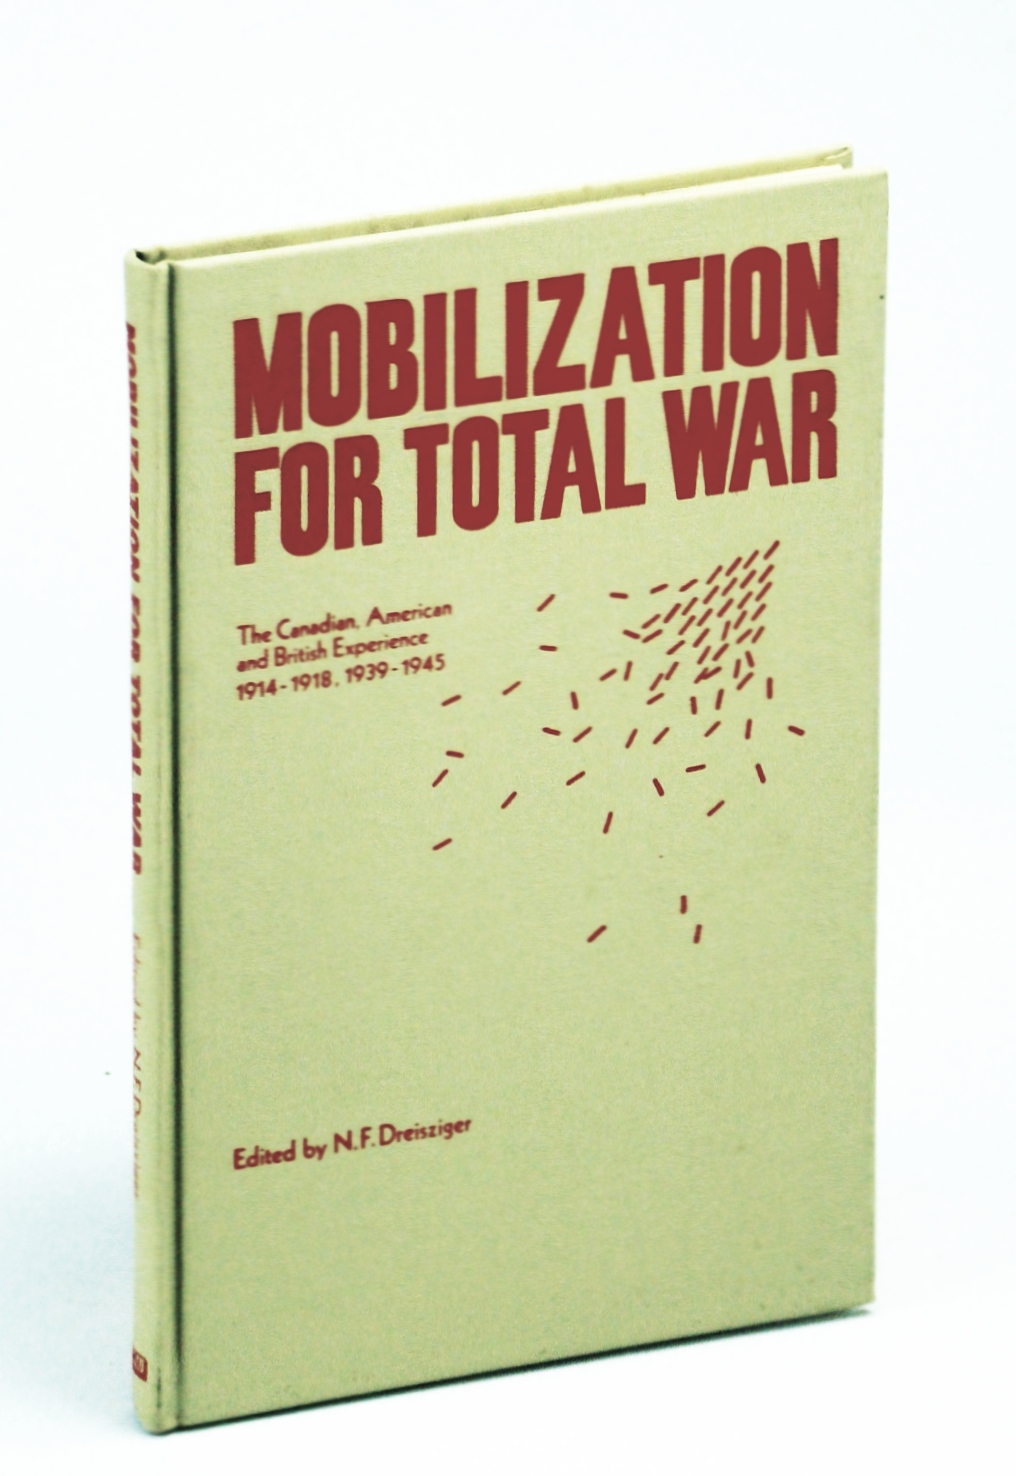 Image for Mobilization for Total War: The Canadian, American and British Experience 1914-1918, 1939-1945